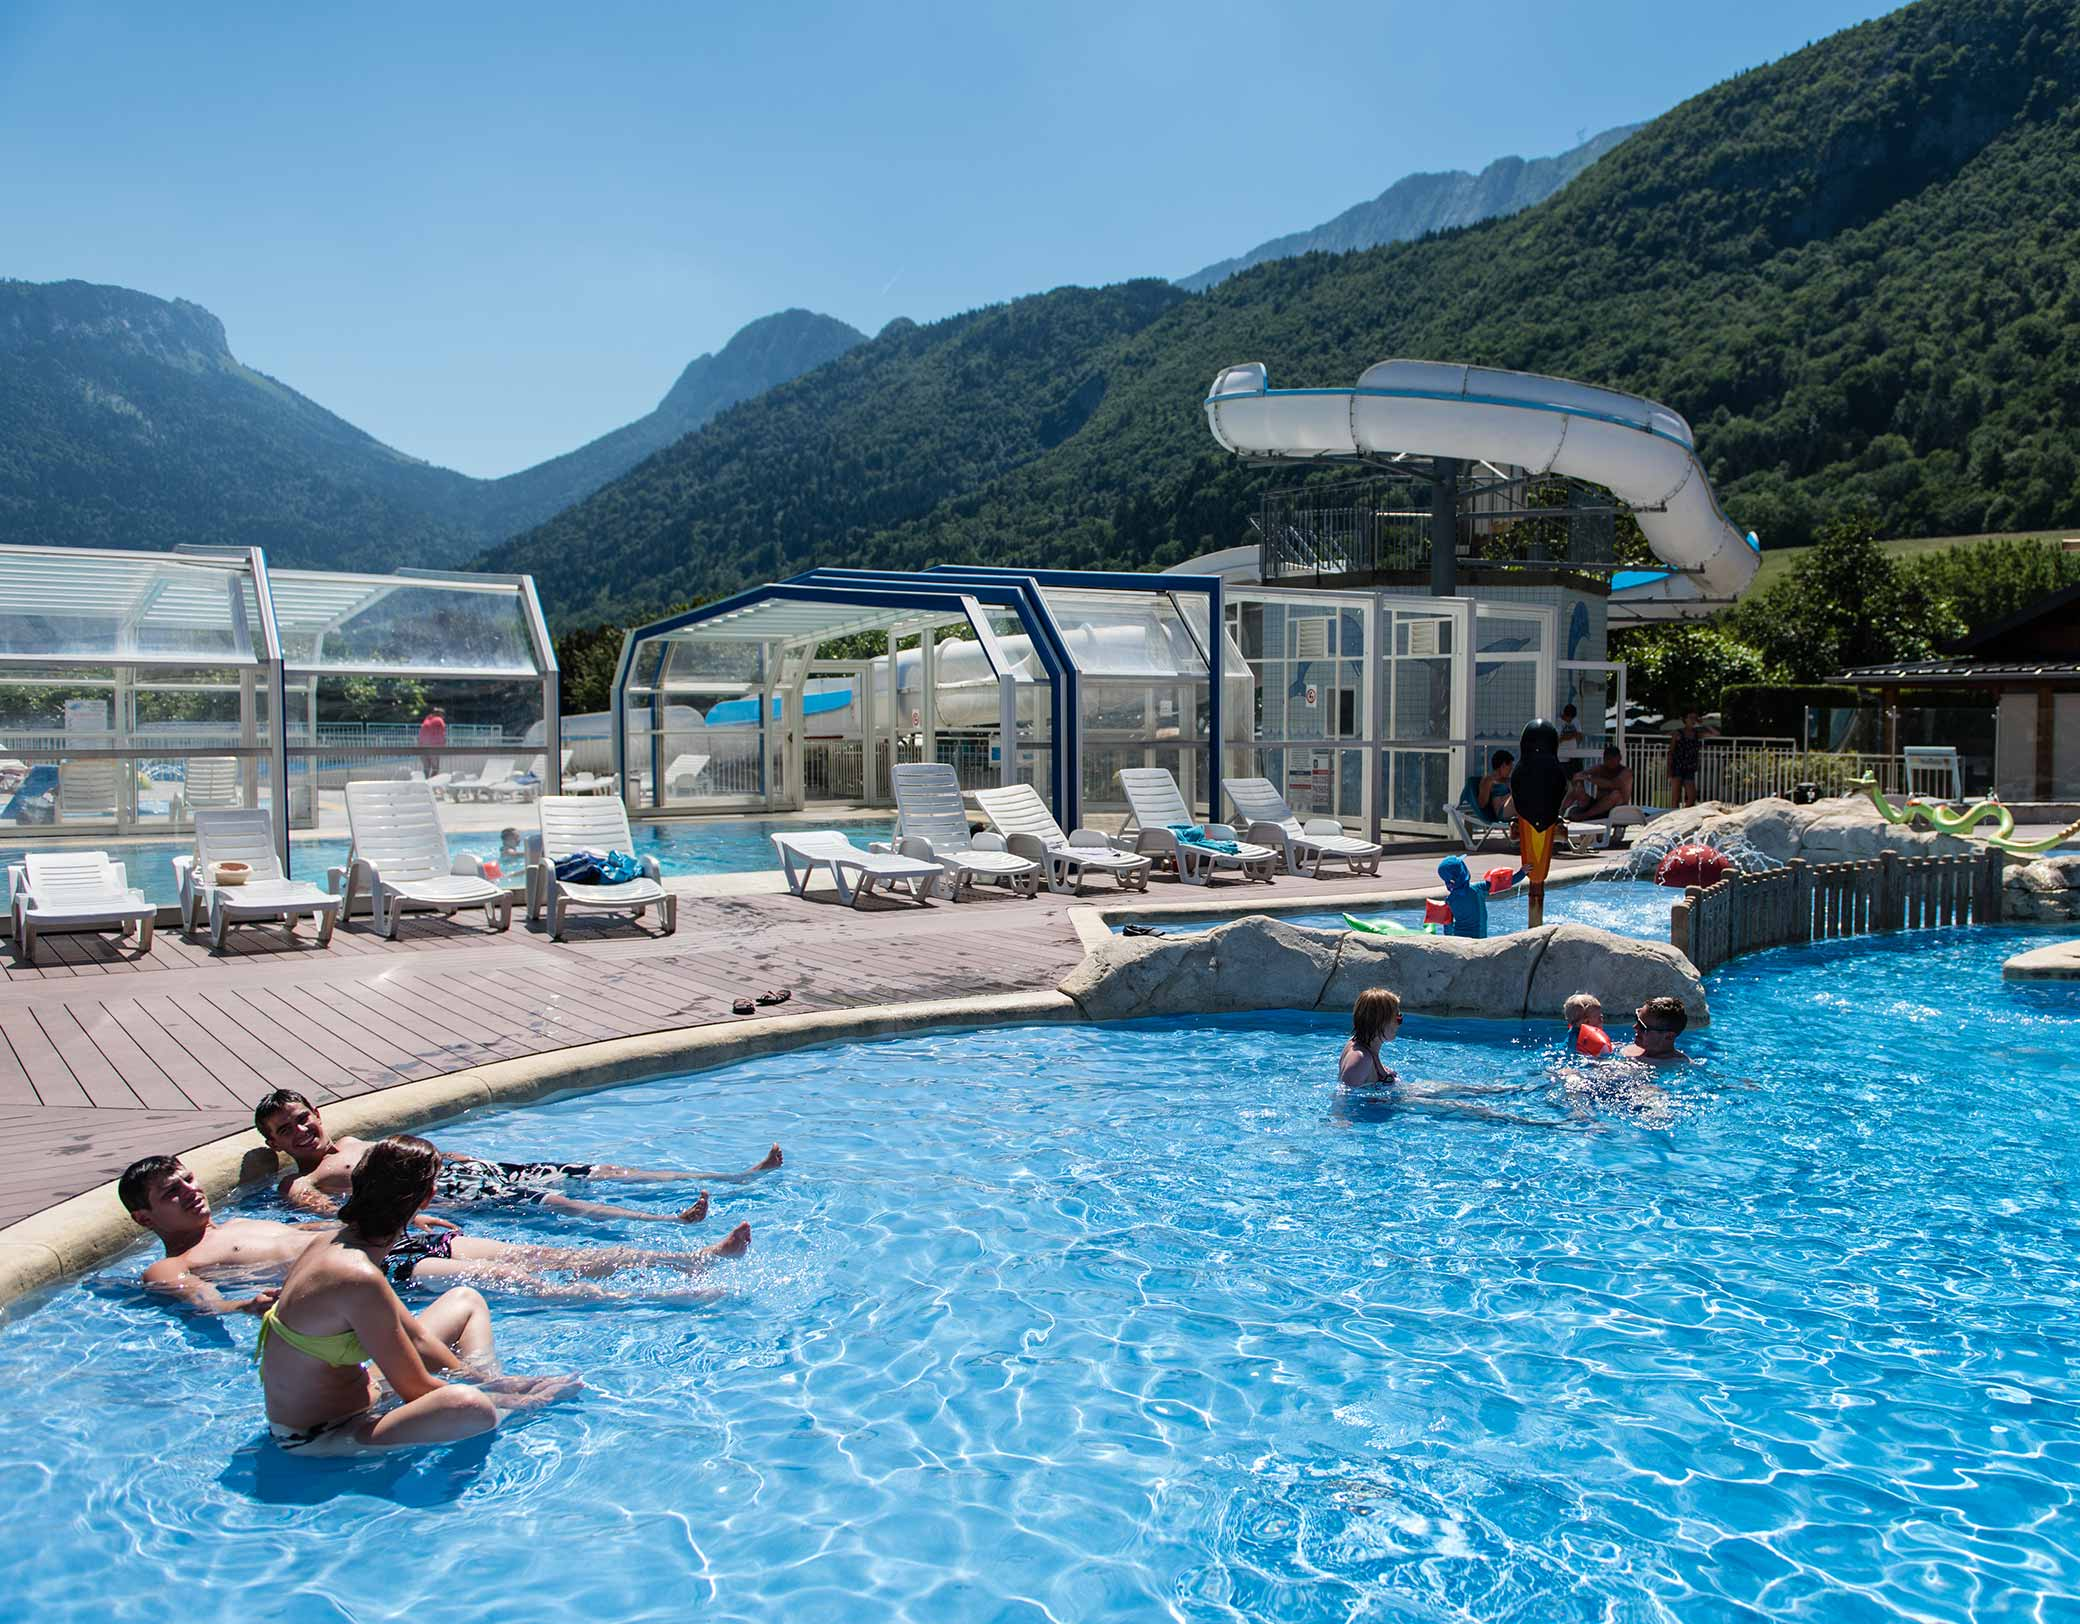 Camping rhone alpes avec piscine lac for Camping provence avec piscine